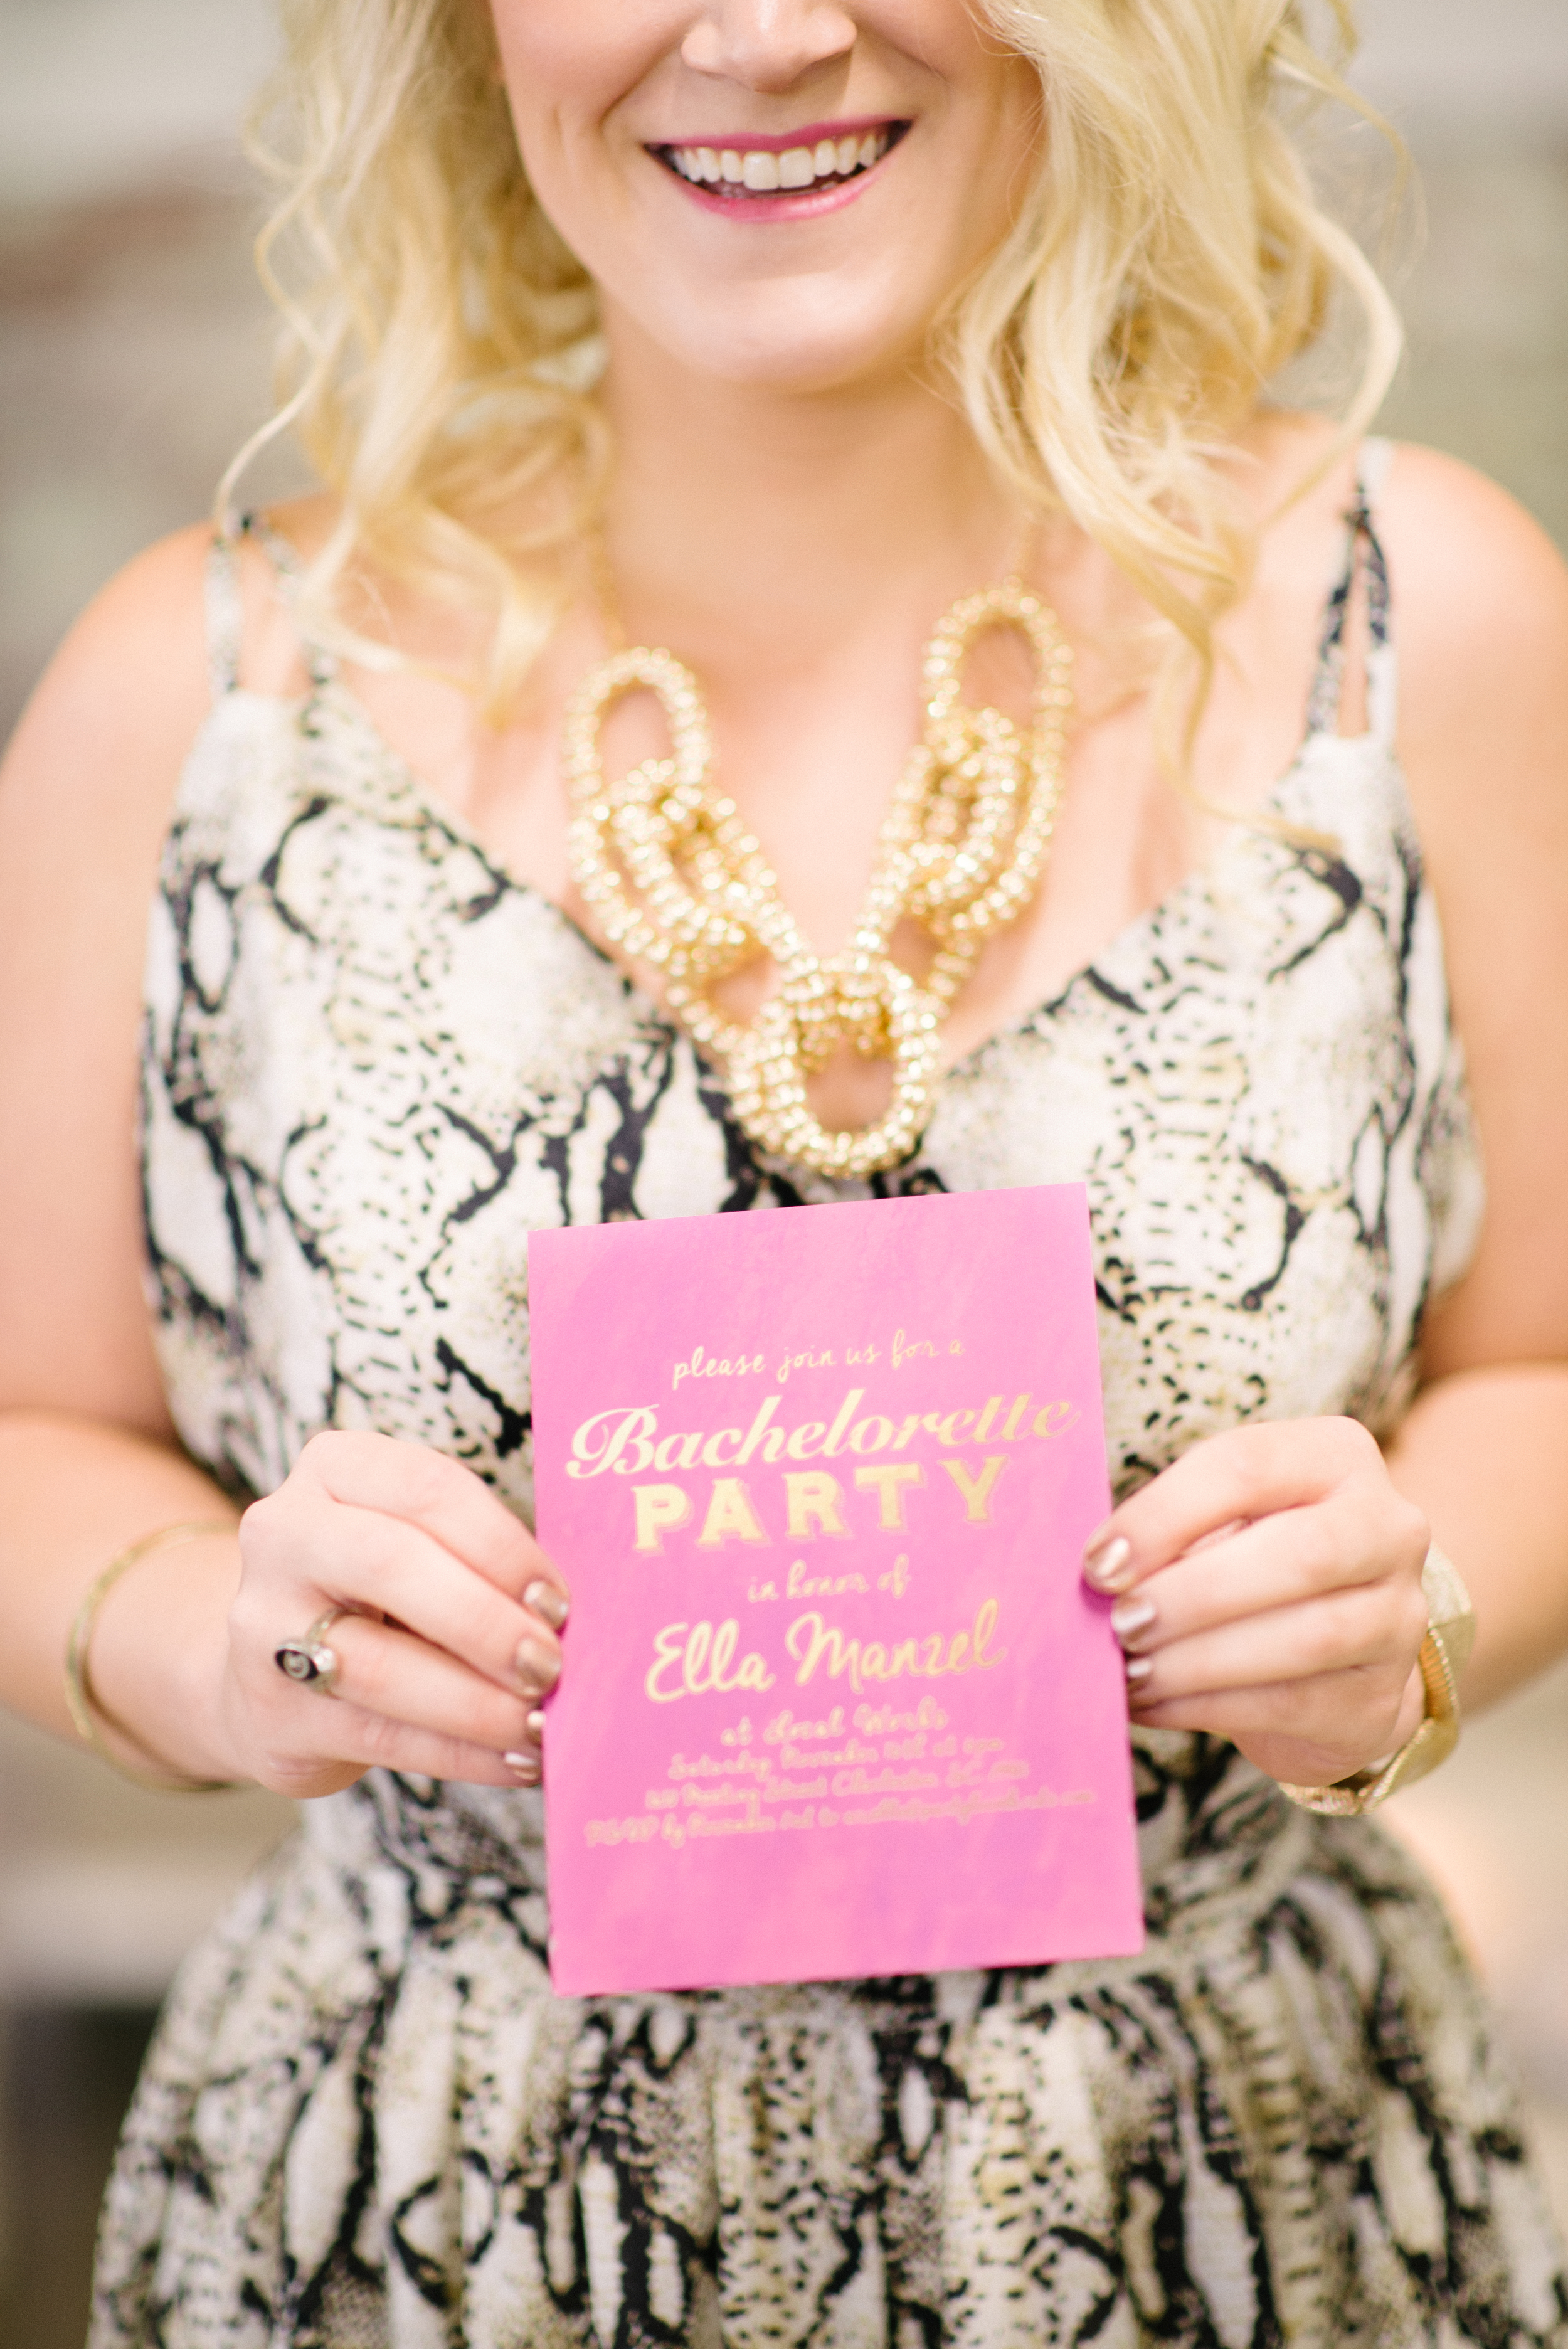 Myrtle Beach Bachelorette Party Shoot by Sean Money + Elizabeth Fay